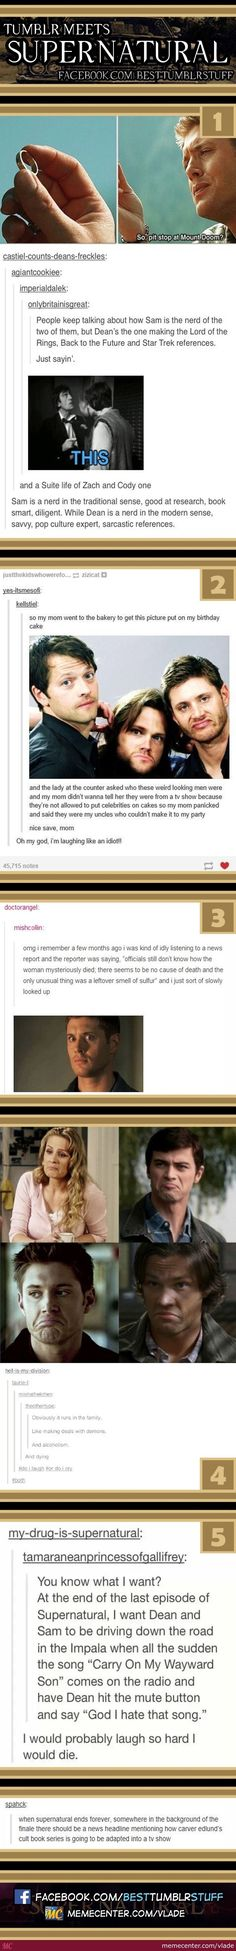 Tumblr Meets Supernatural by vlade - Meme Center. The last two killed me...: